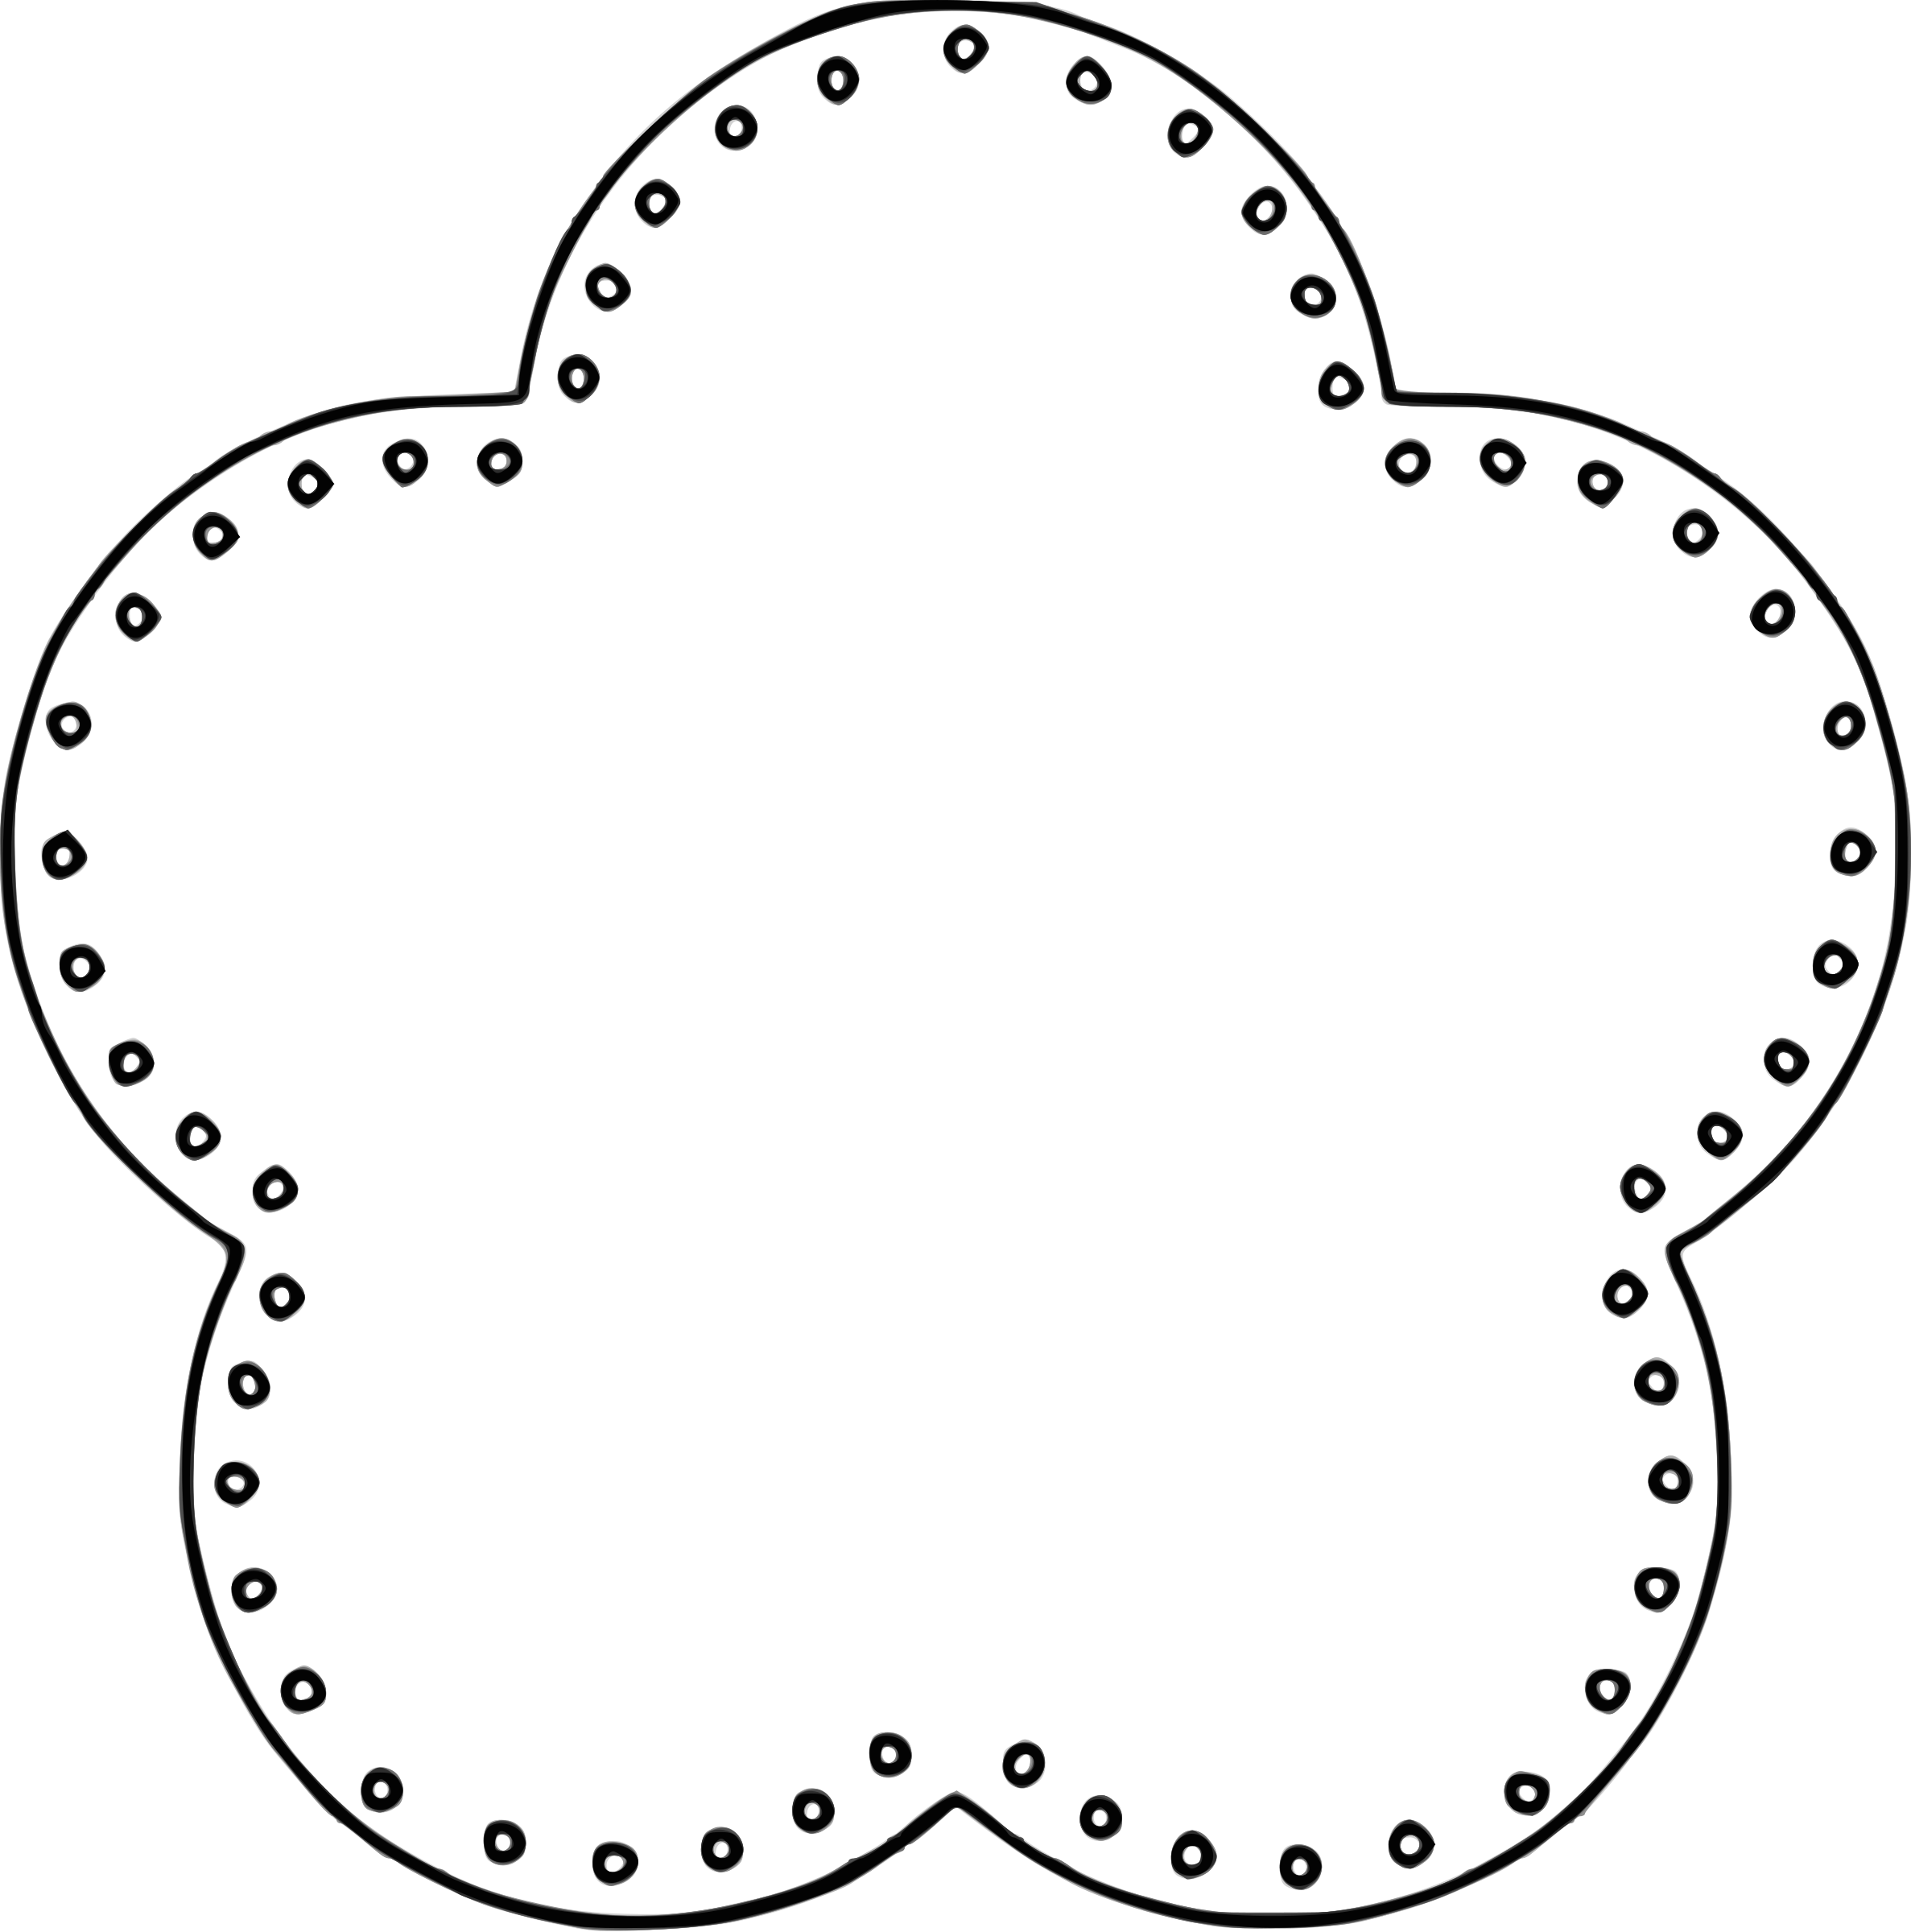 Flowers clipart circle. Flower scallop background eyelets